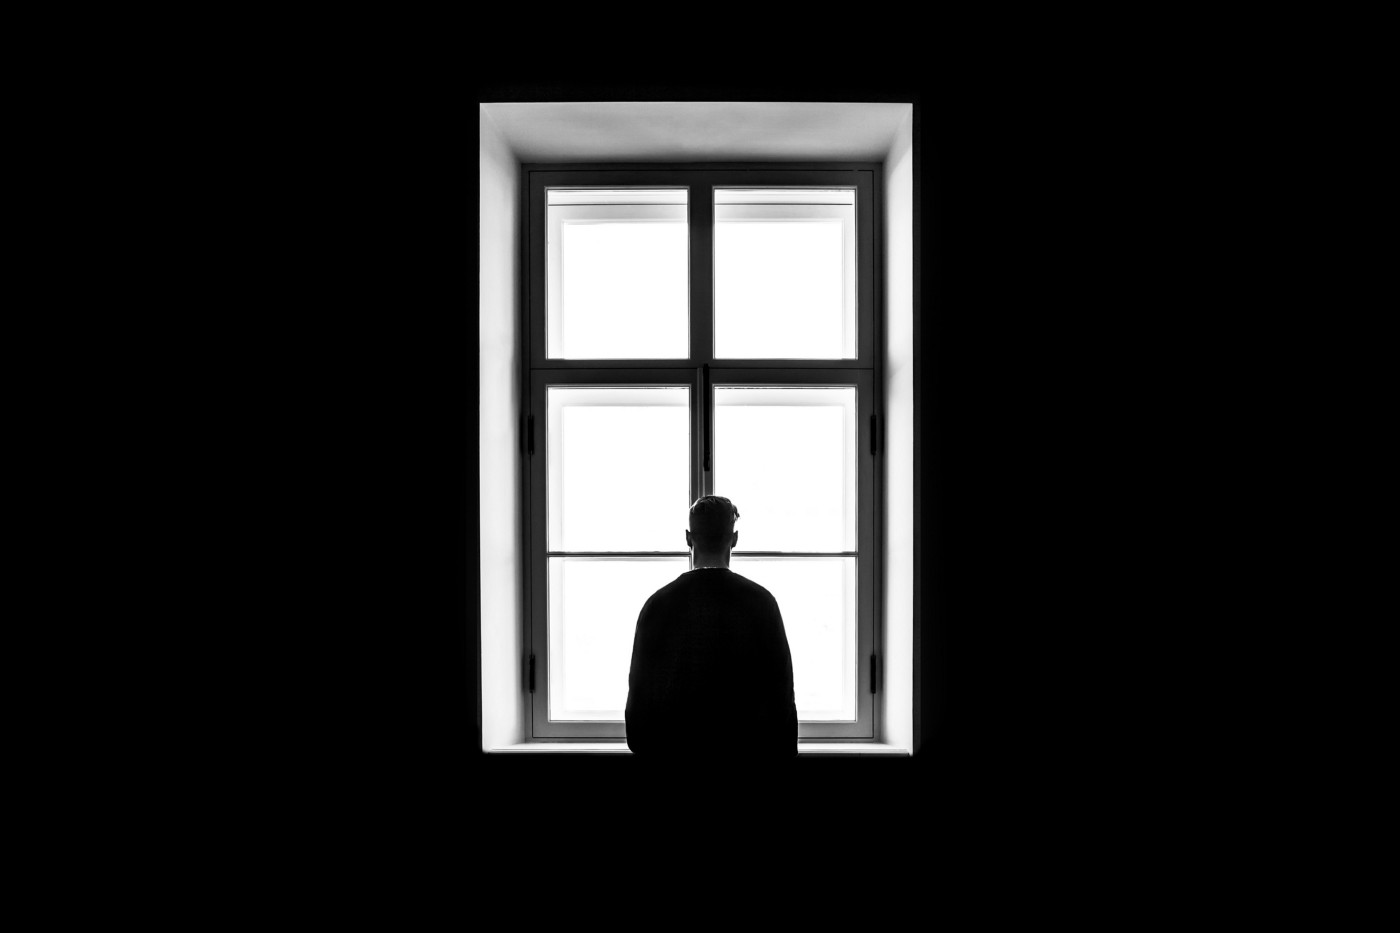 The silhouette of a young man looking outside a window alone.